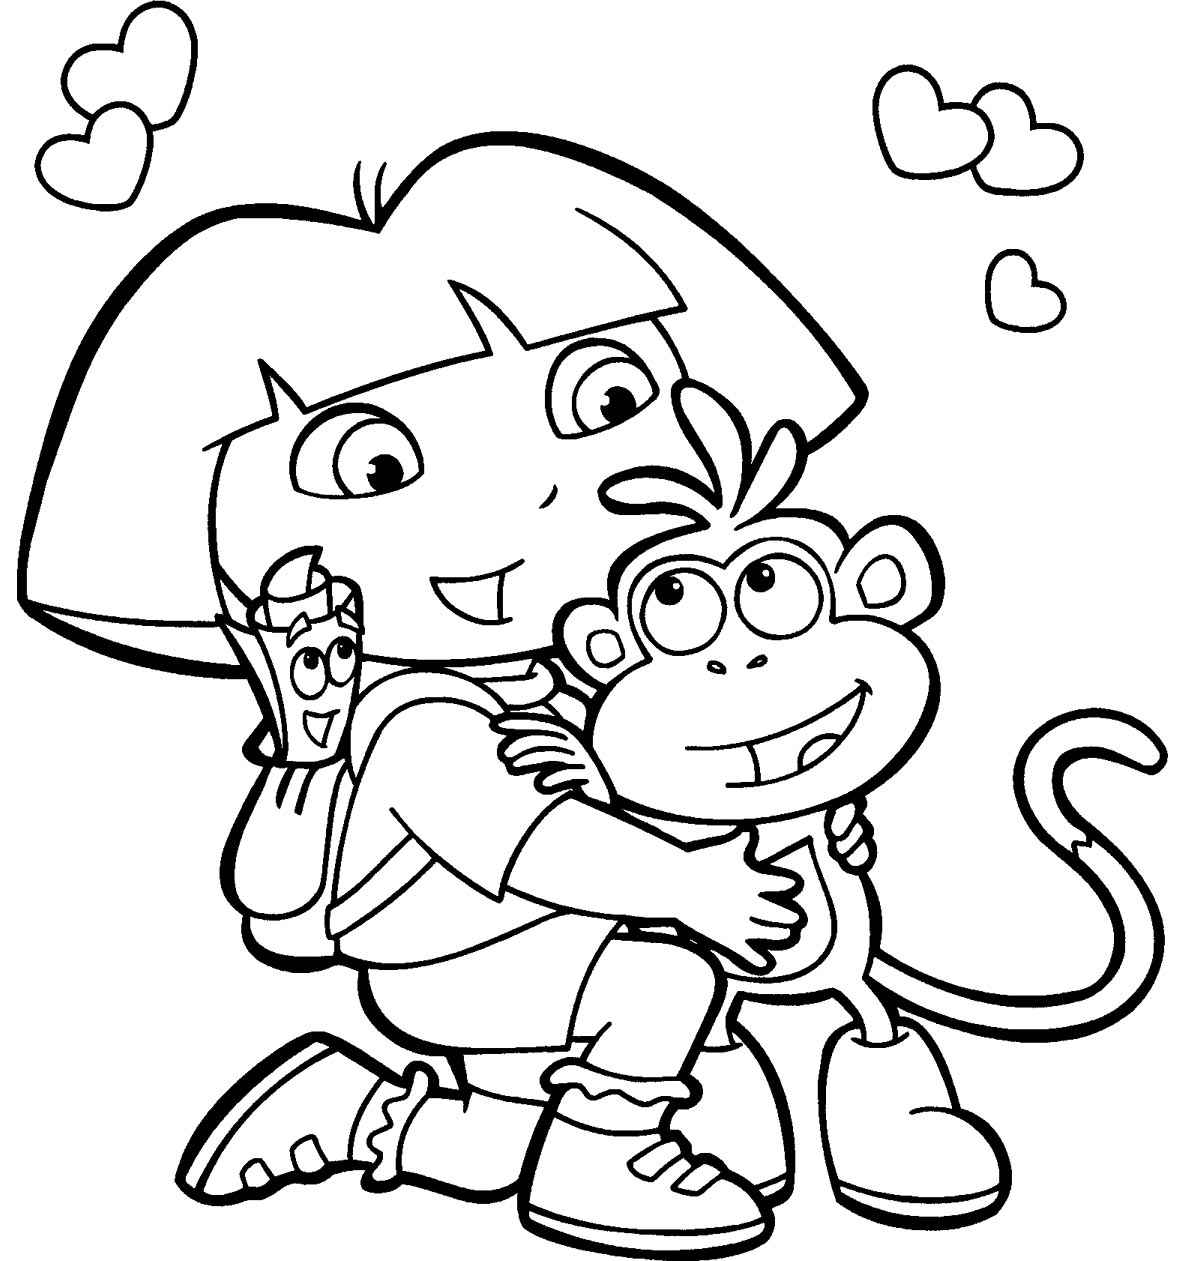 dora the explorer coloring pages printable dora the explorer printable coloring pages for free